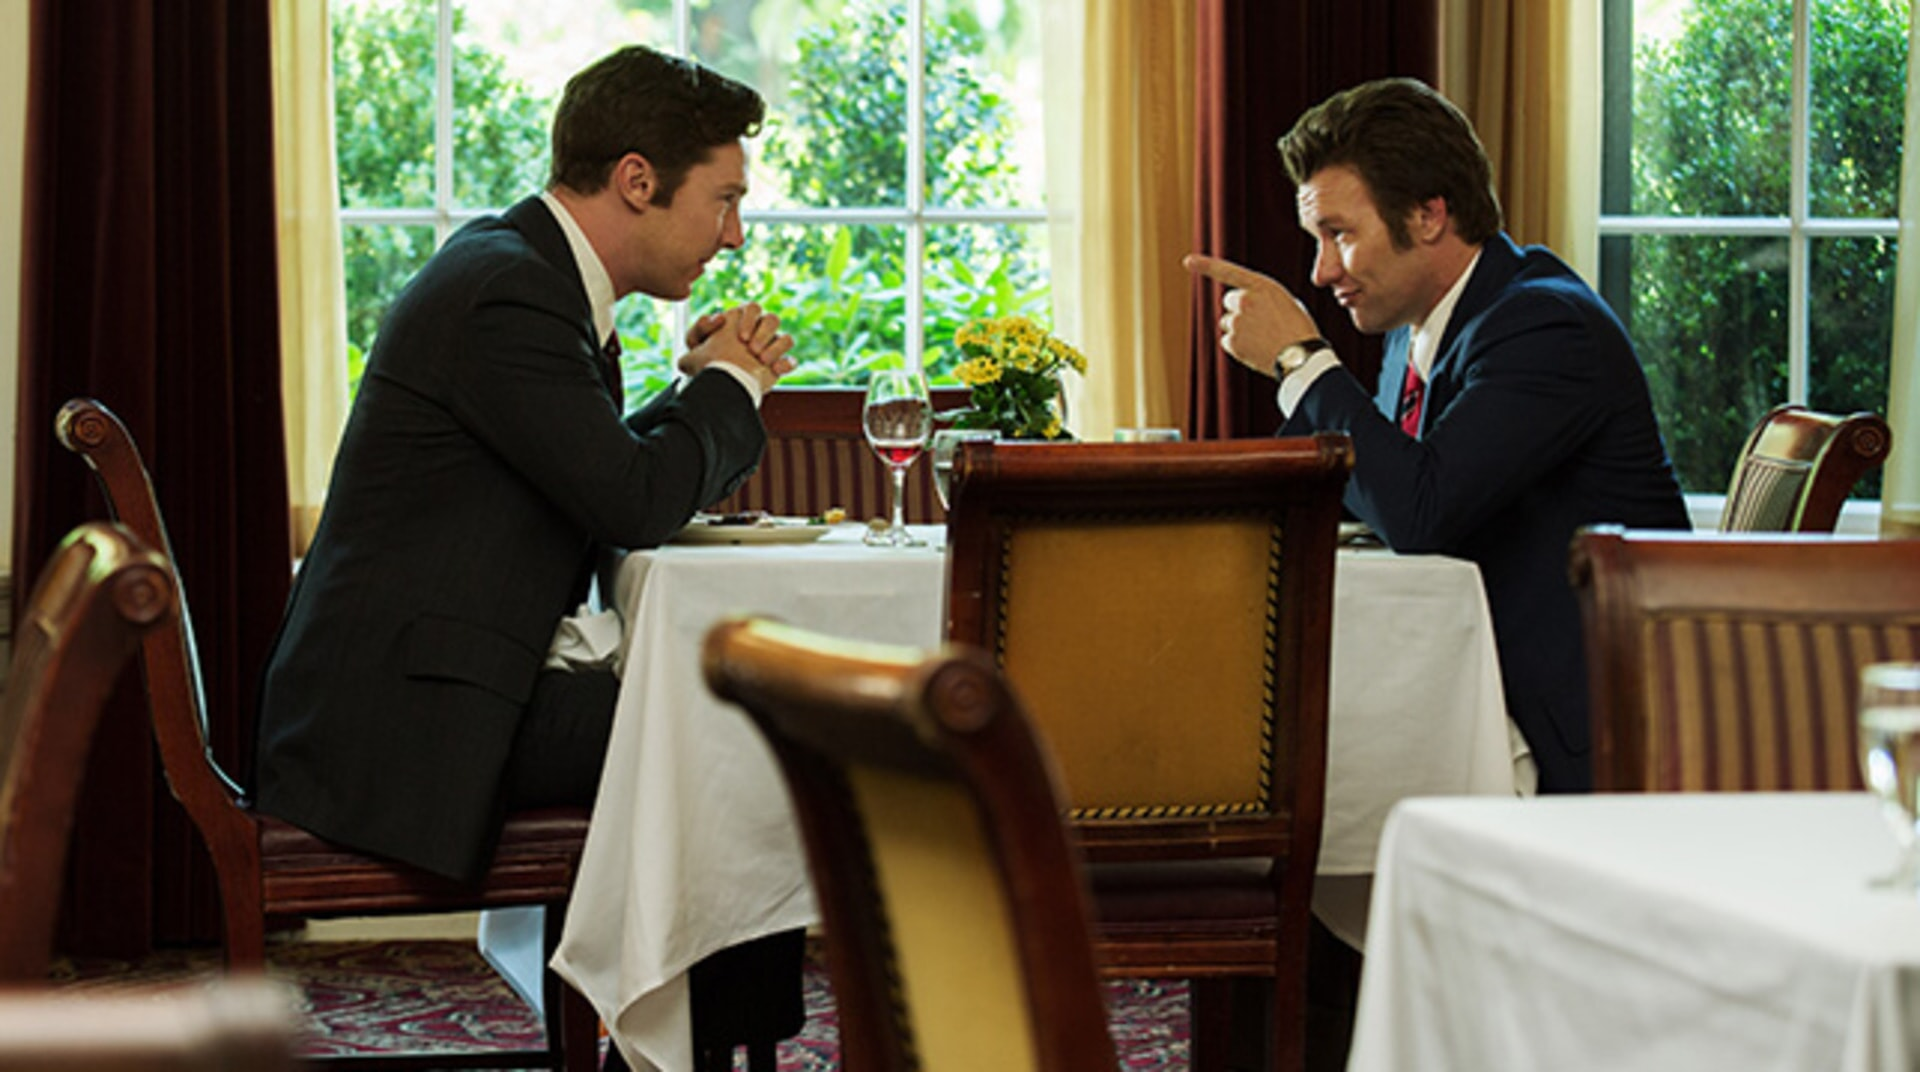 """BENEDICT CUMBERBATCH as Billy Bulger and JOEL EDGERTON as John Connolly in the drama """"BLACK MASS."""""""